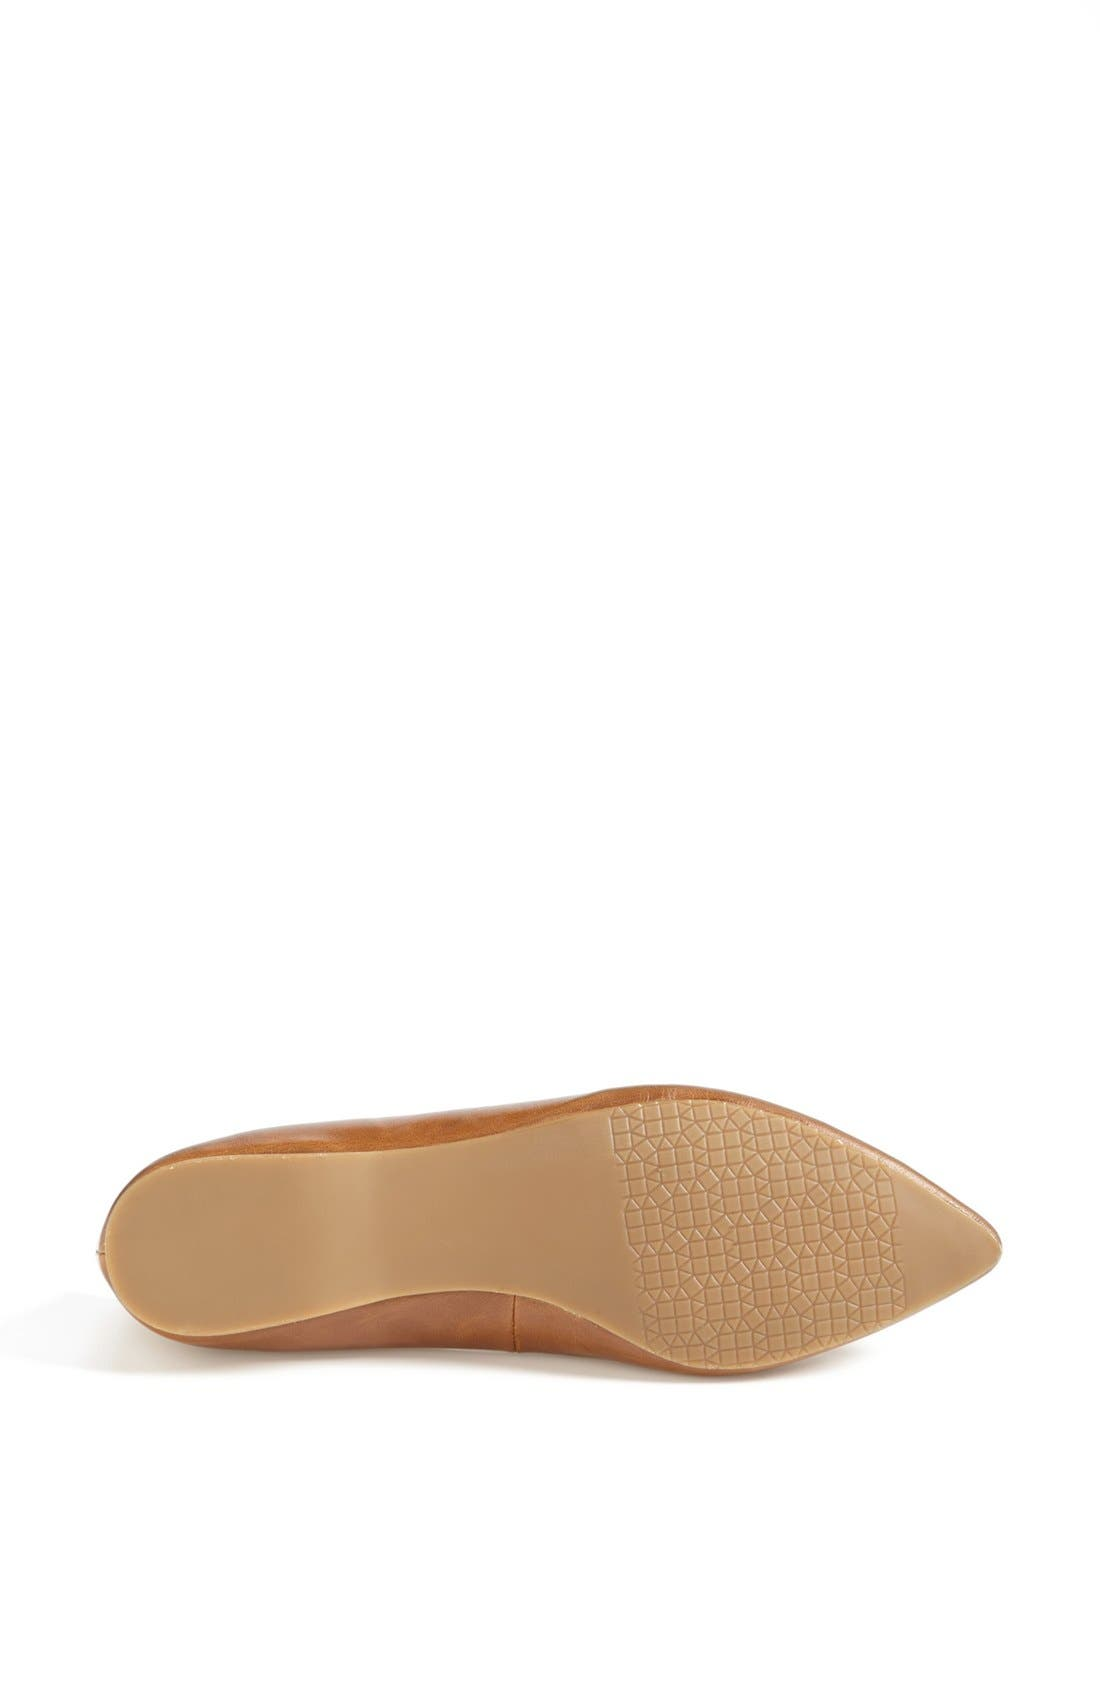 'Moveover' Pointy Toe Flat,                             Alternate thumbnail 45, color,